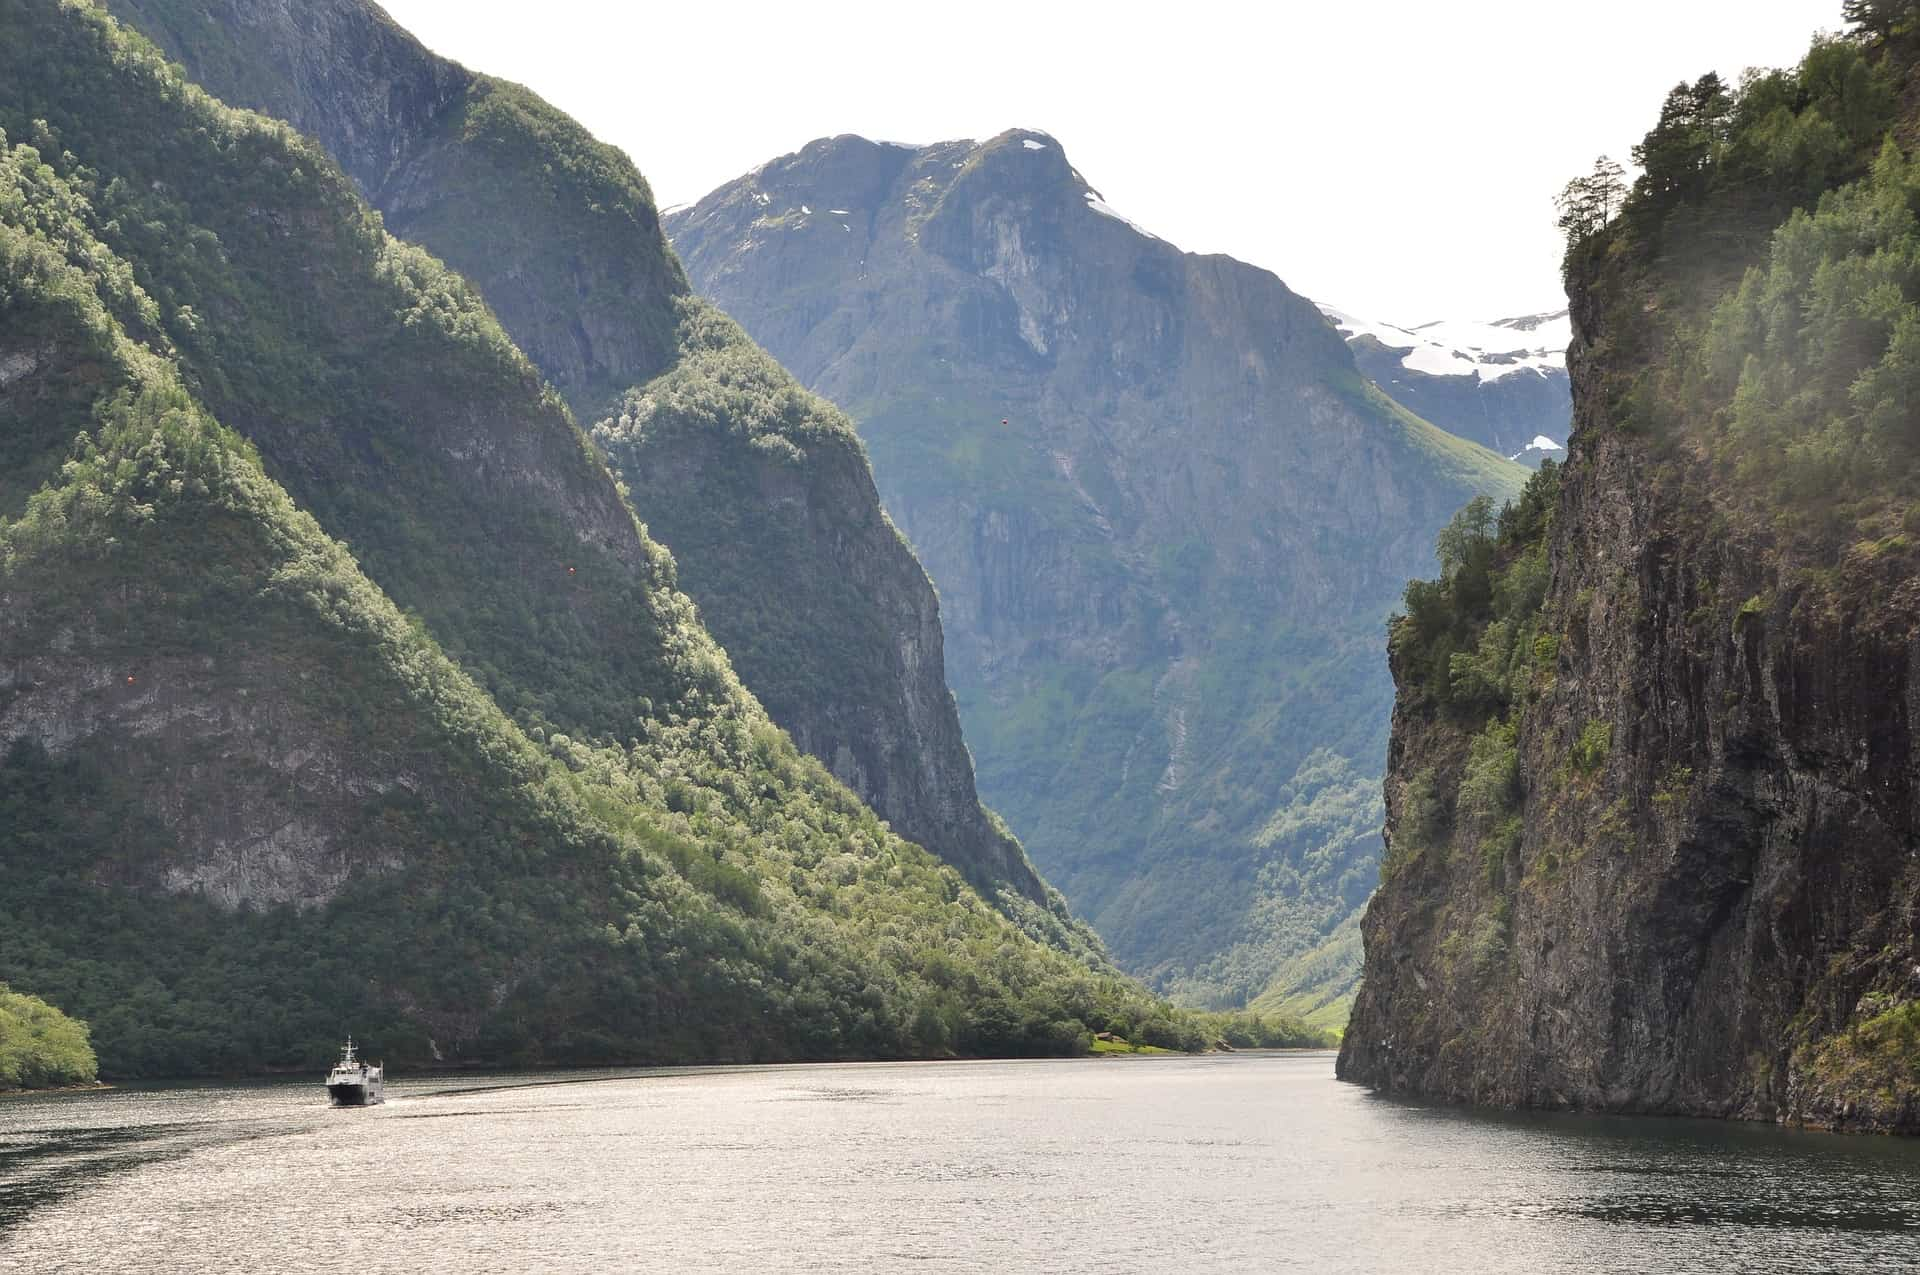 Cliffs that seem to reach into the sky, lush hills and ice-blue water in which rock walls reflect: this is the world-famous Naeroyfjord.